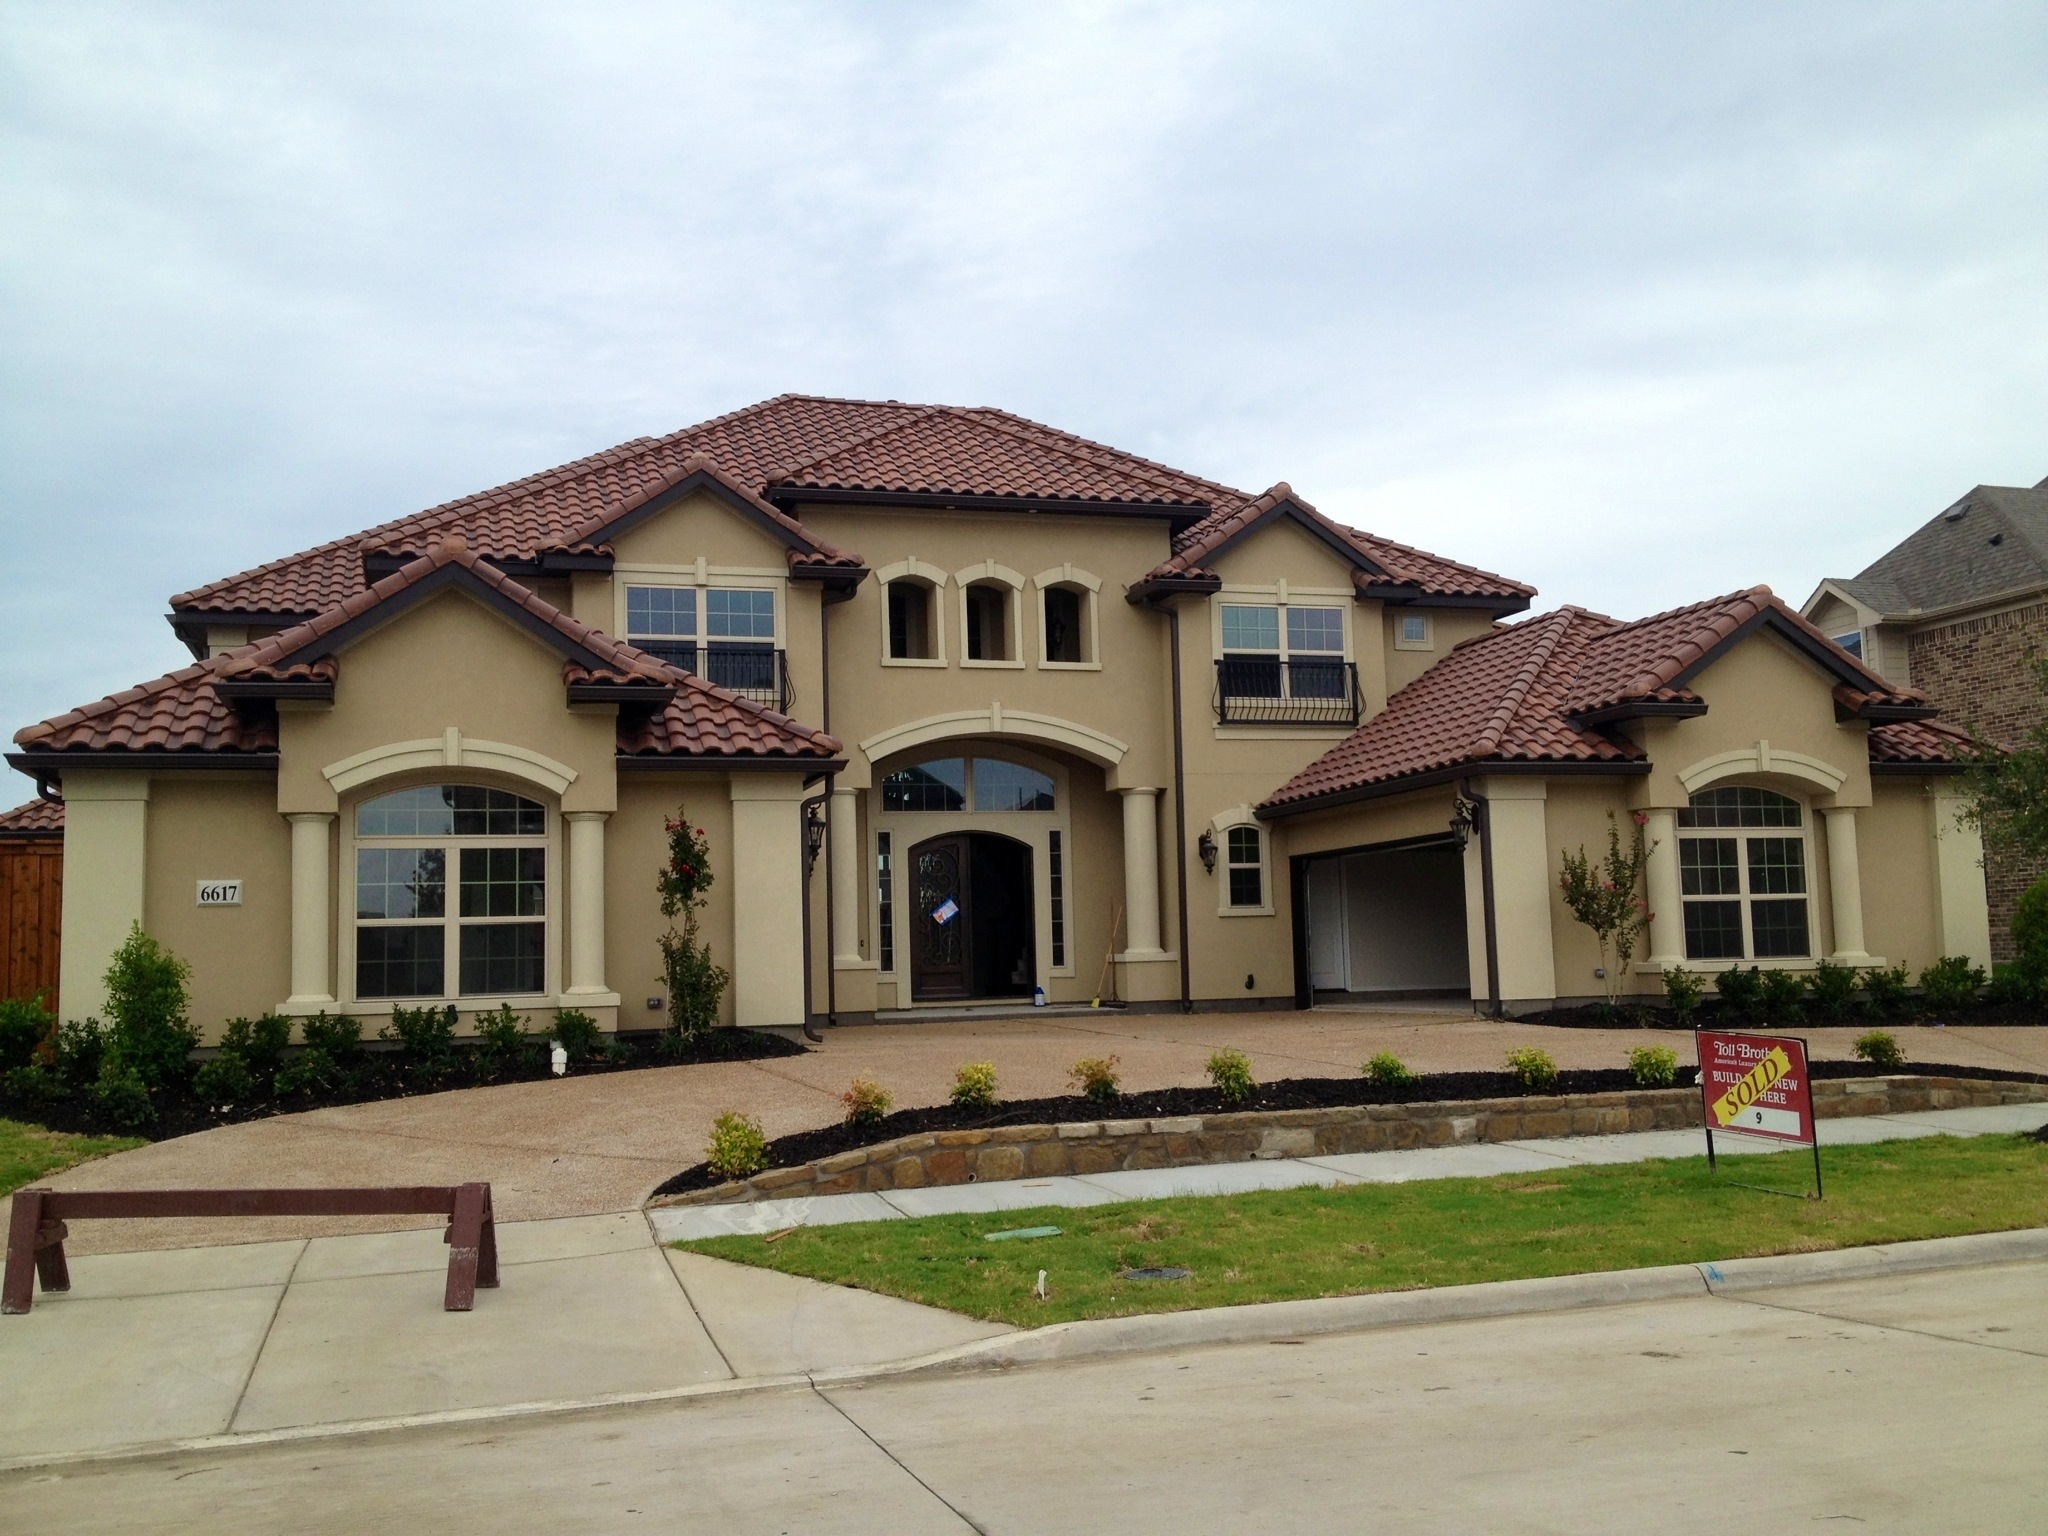 Toll brothers phillips creek ranch update frisco for Houses for homes